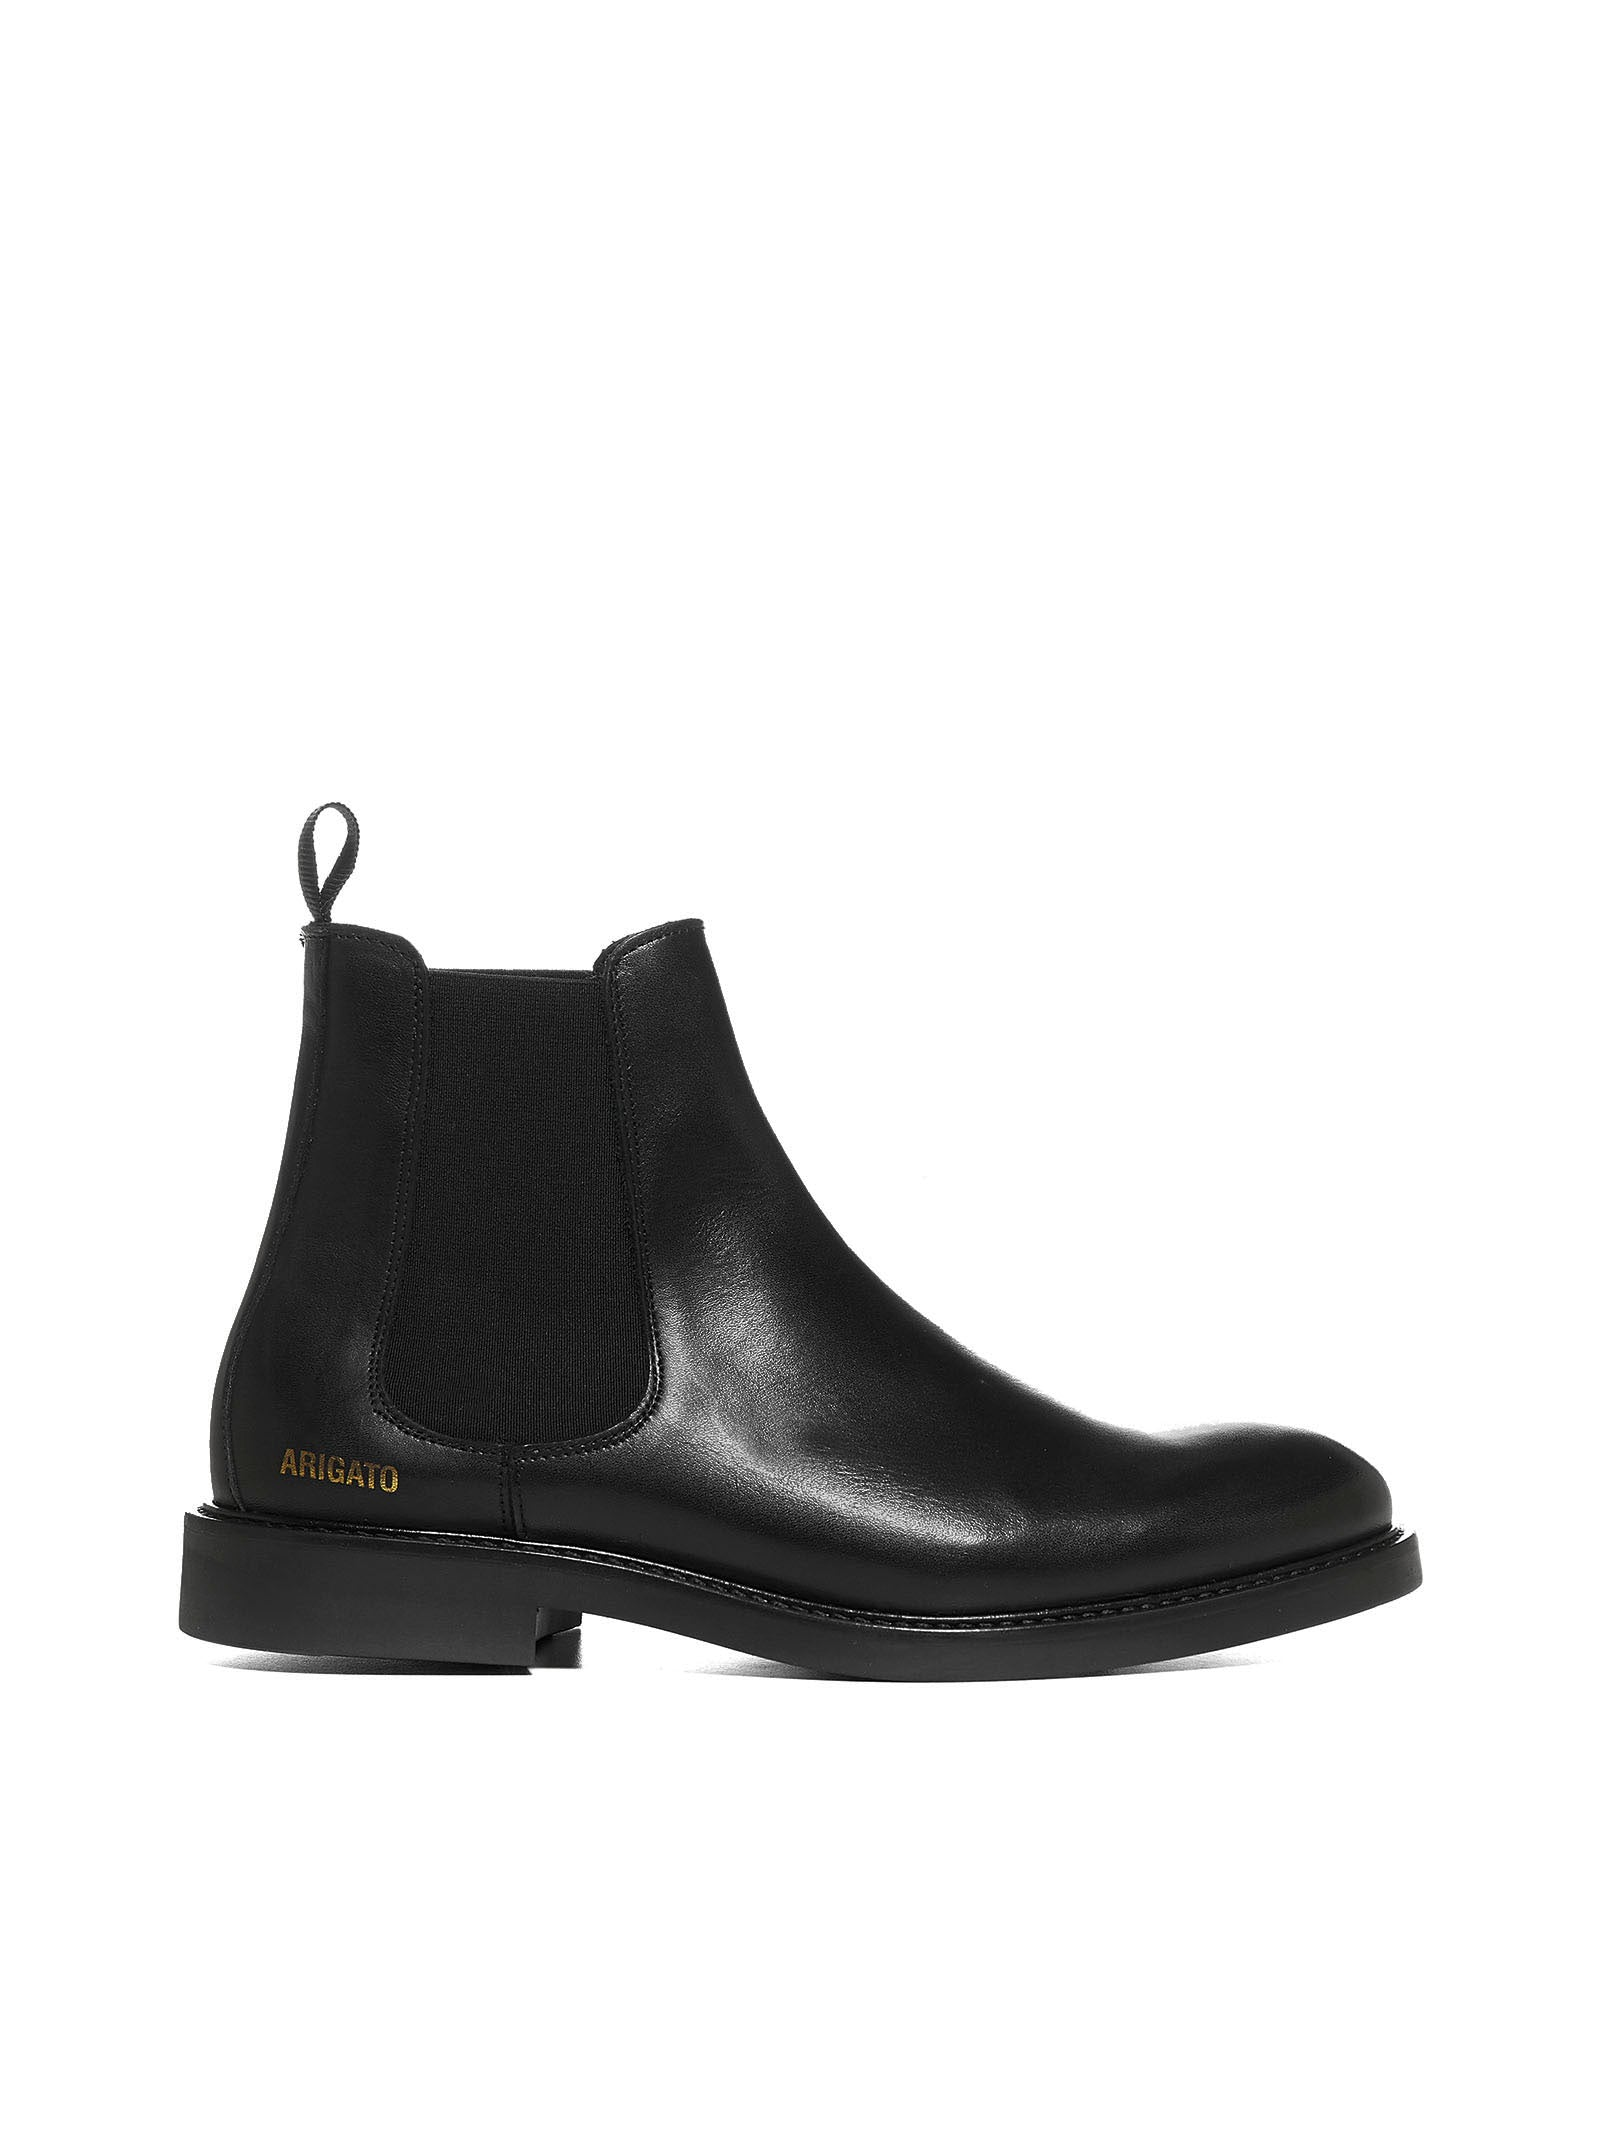 Axel Arigato Leathers AXEL ARIGATO CHELSEA BOOTS